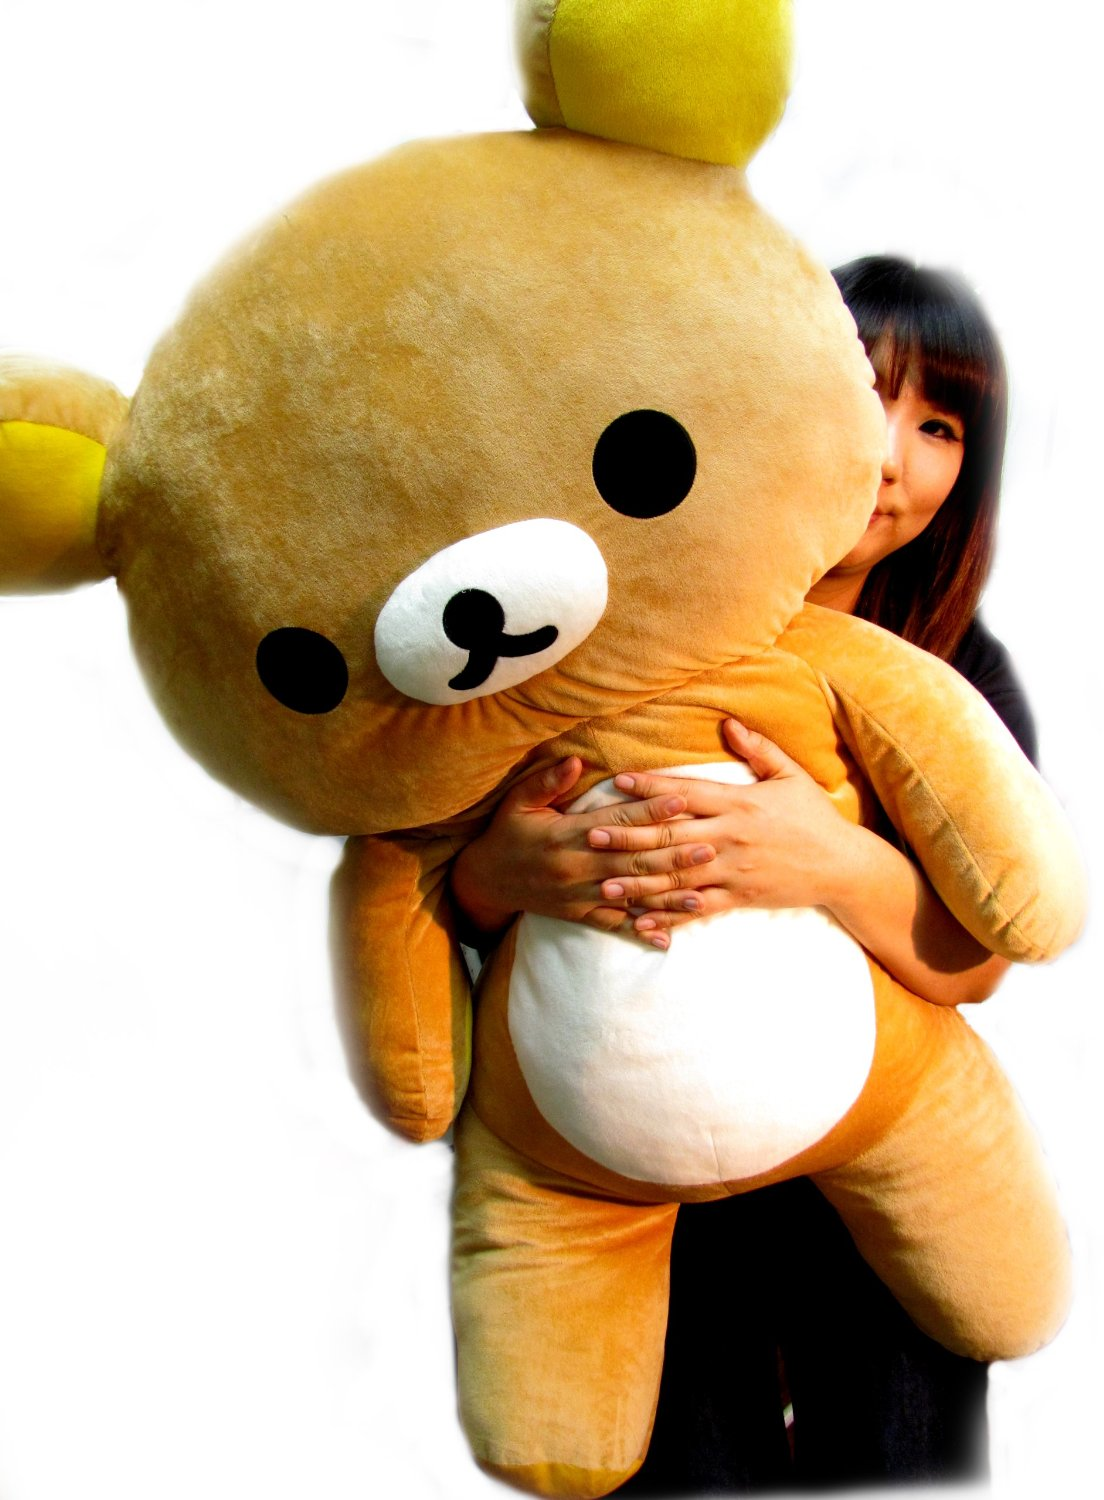 Popular Rilakkuma Anime Adorable Dog - rilakkuma_japan  HD_532674  .jpg?ssl\u003d1